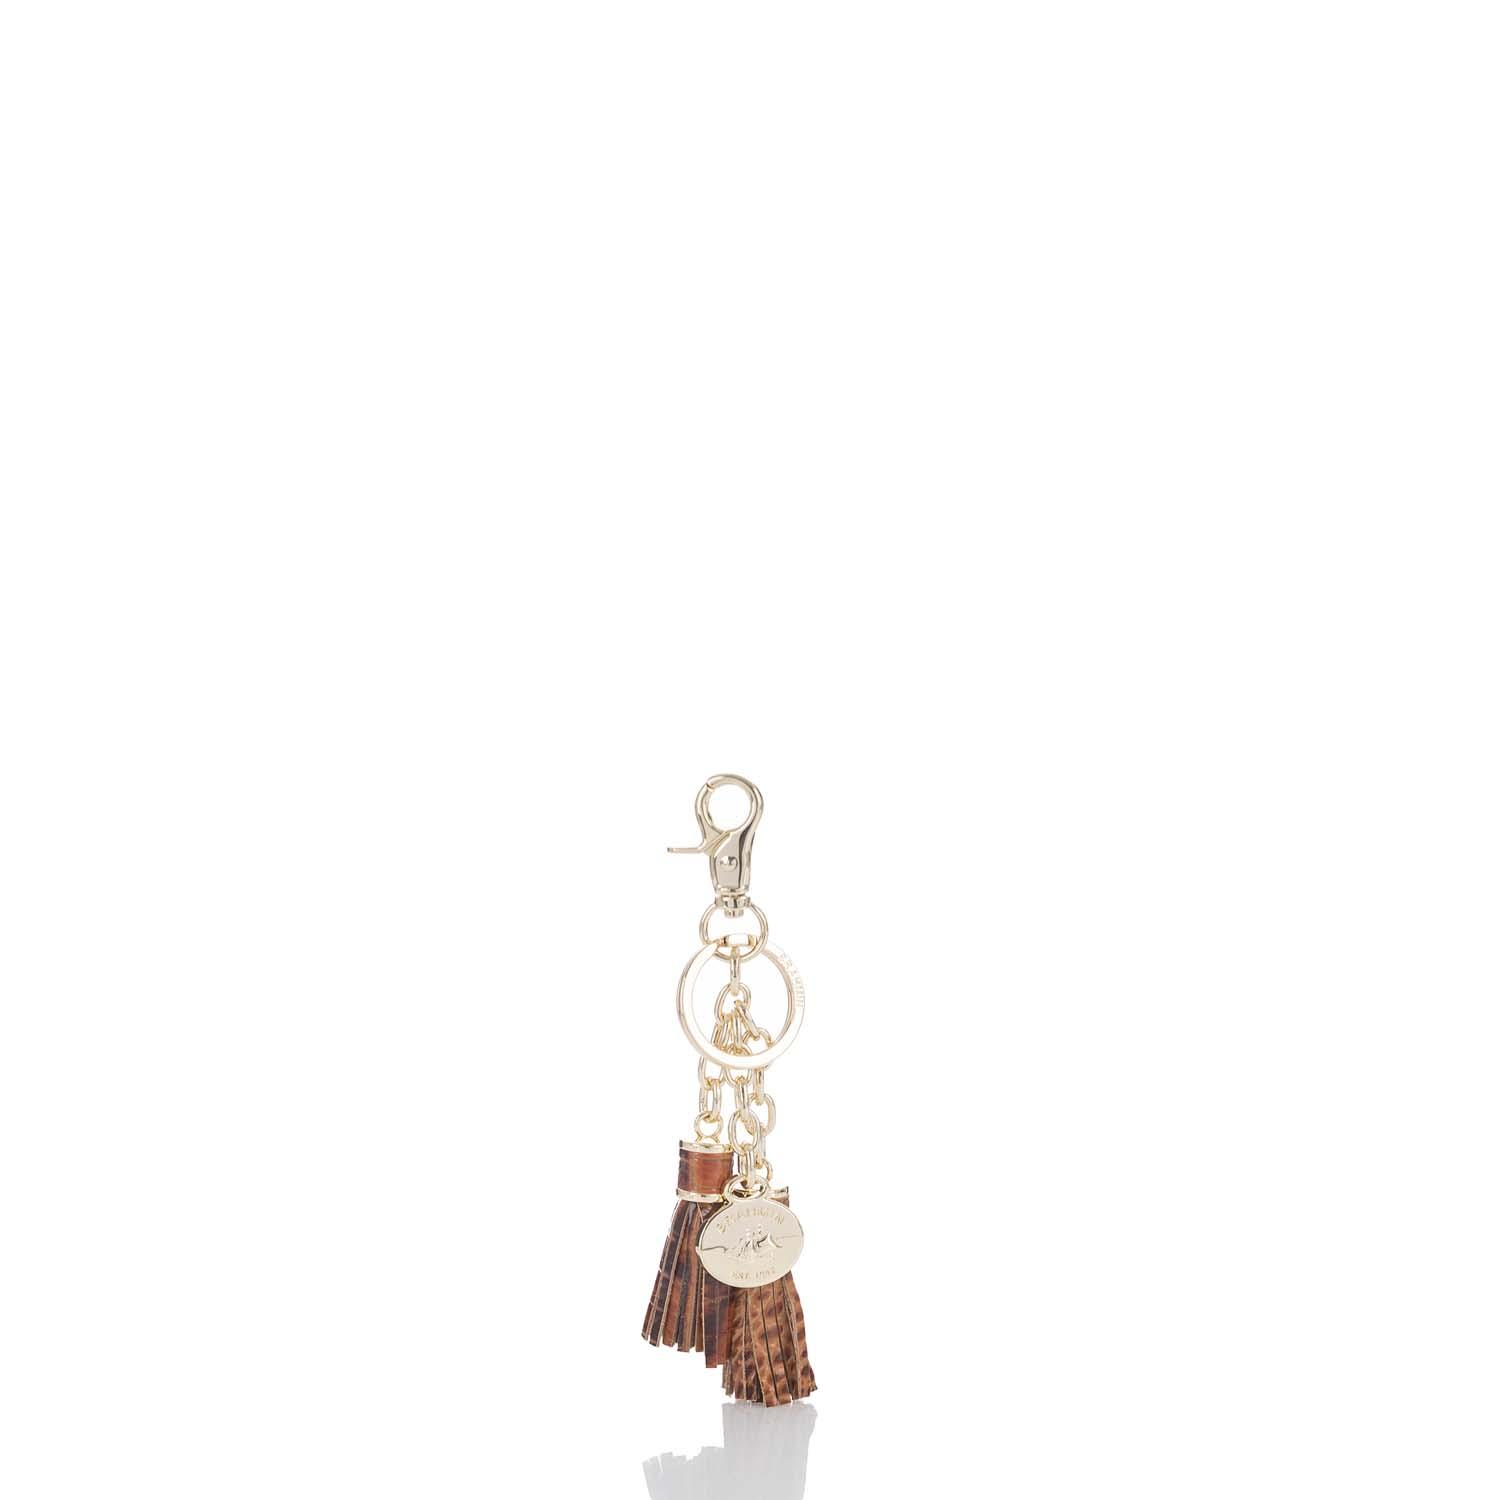 Tassel Key Ring Toasted Almond Melbourne